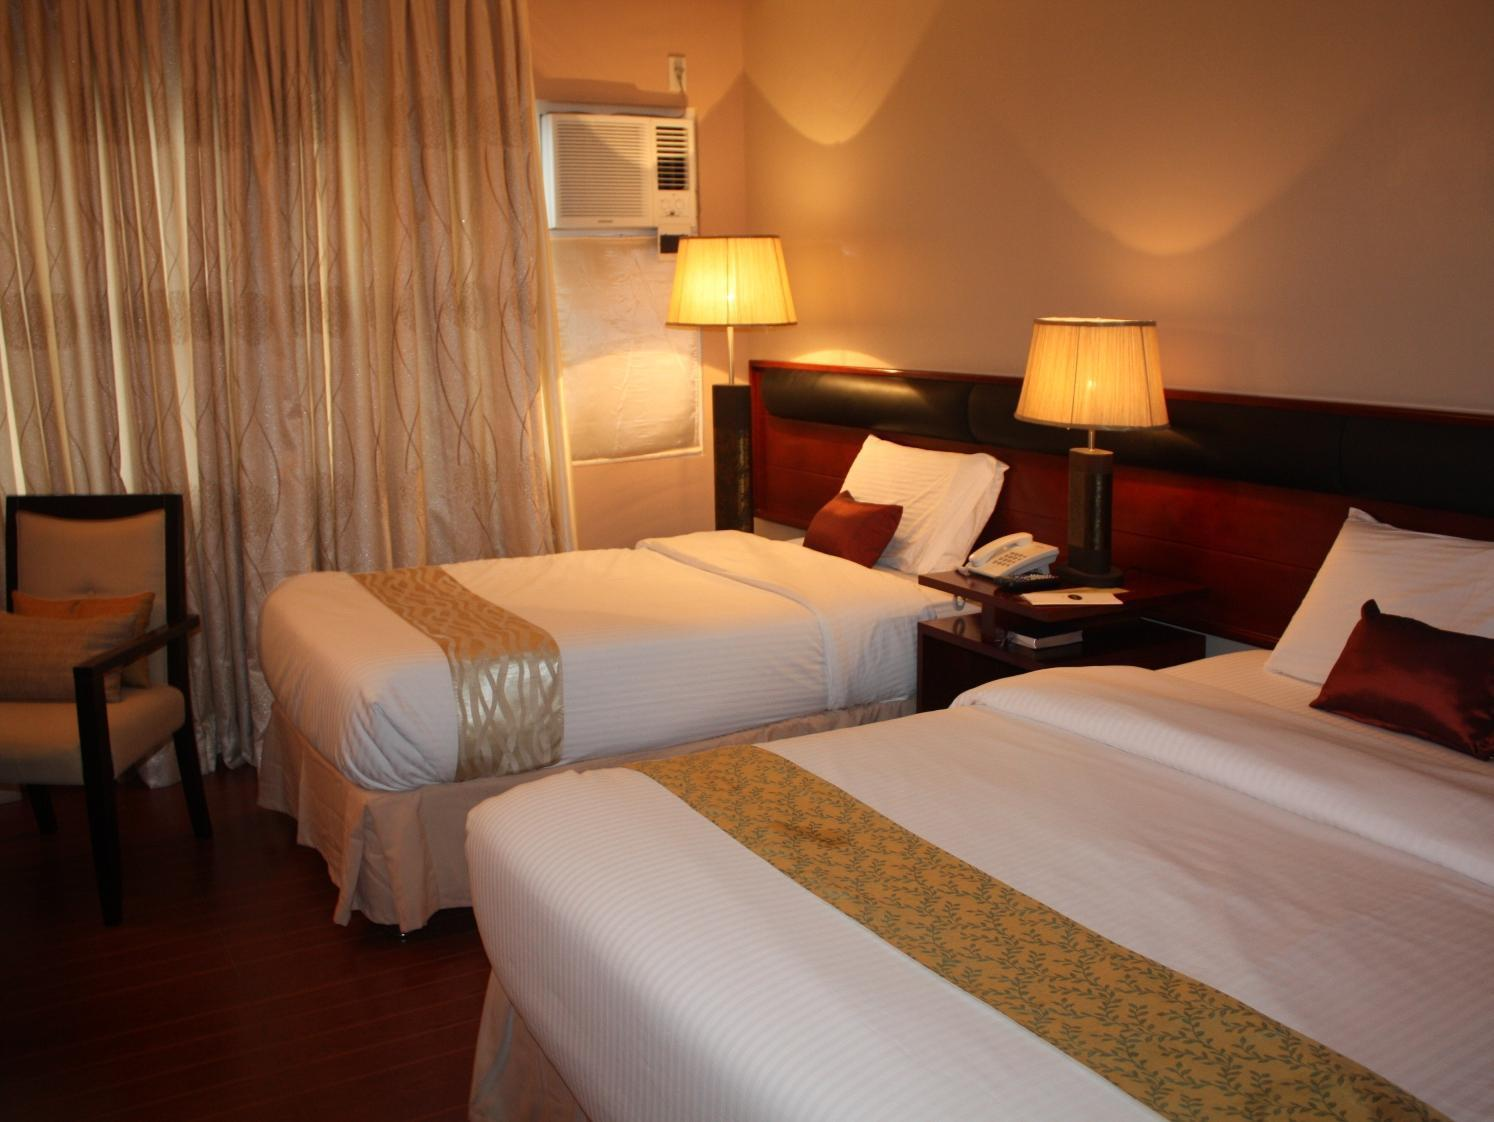 Allure Hotel & Suites Cebu-Stadt